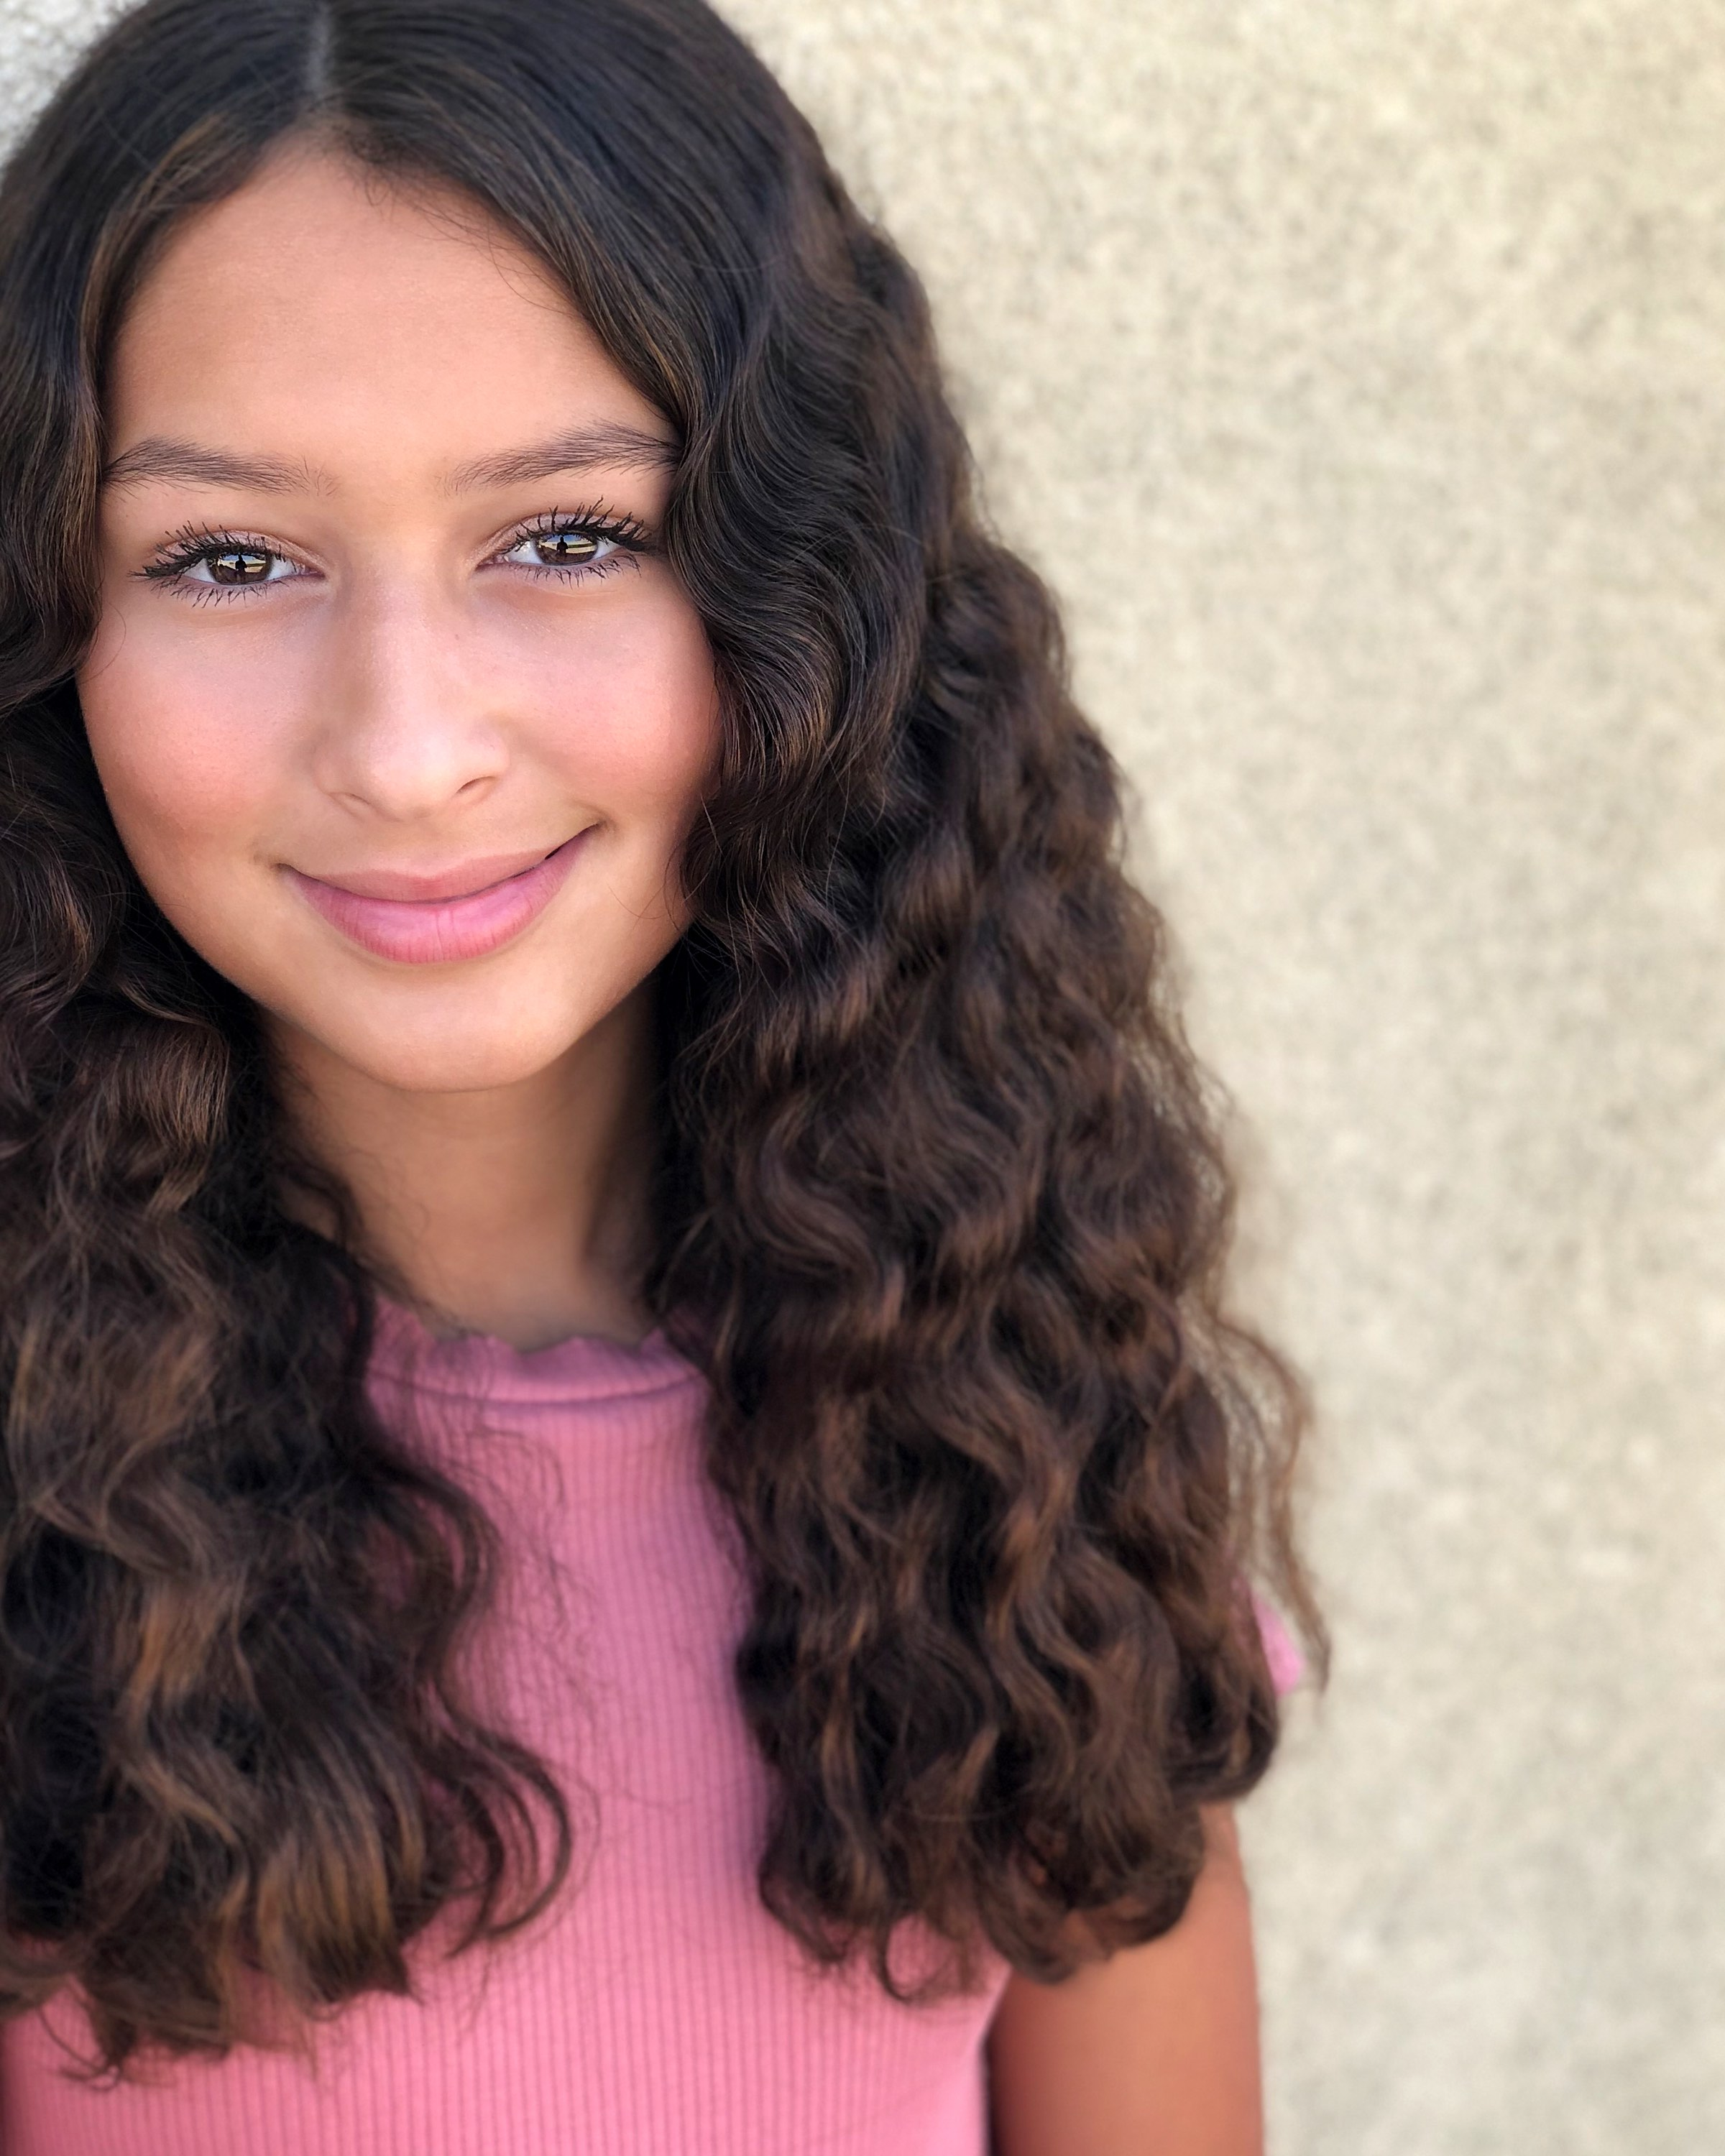 Madison Mosley - Madison Mosley is a singer, actor and dancer. She is 13 years old and has been singing most of her life. In her free time she loves to hang out with her friends and family, dance and enjoy sweets! More projects coming soon from this new talent.